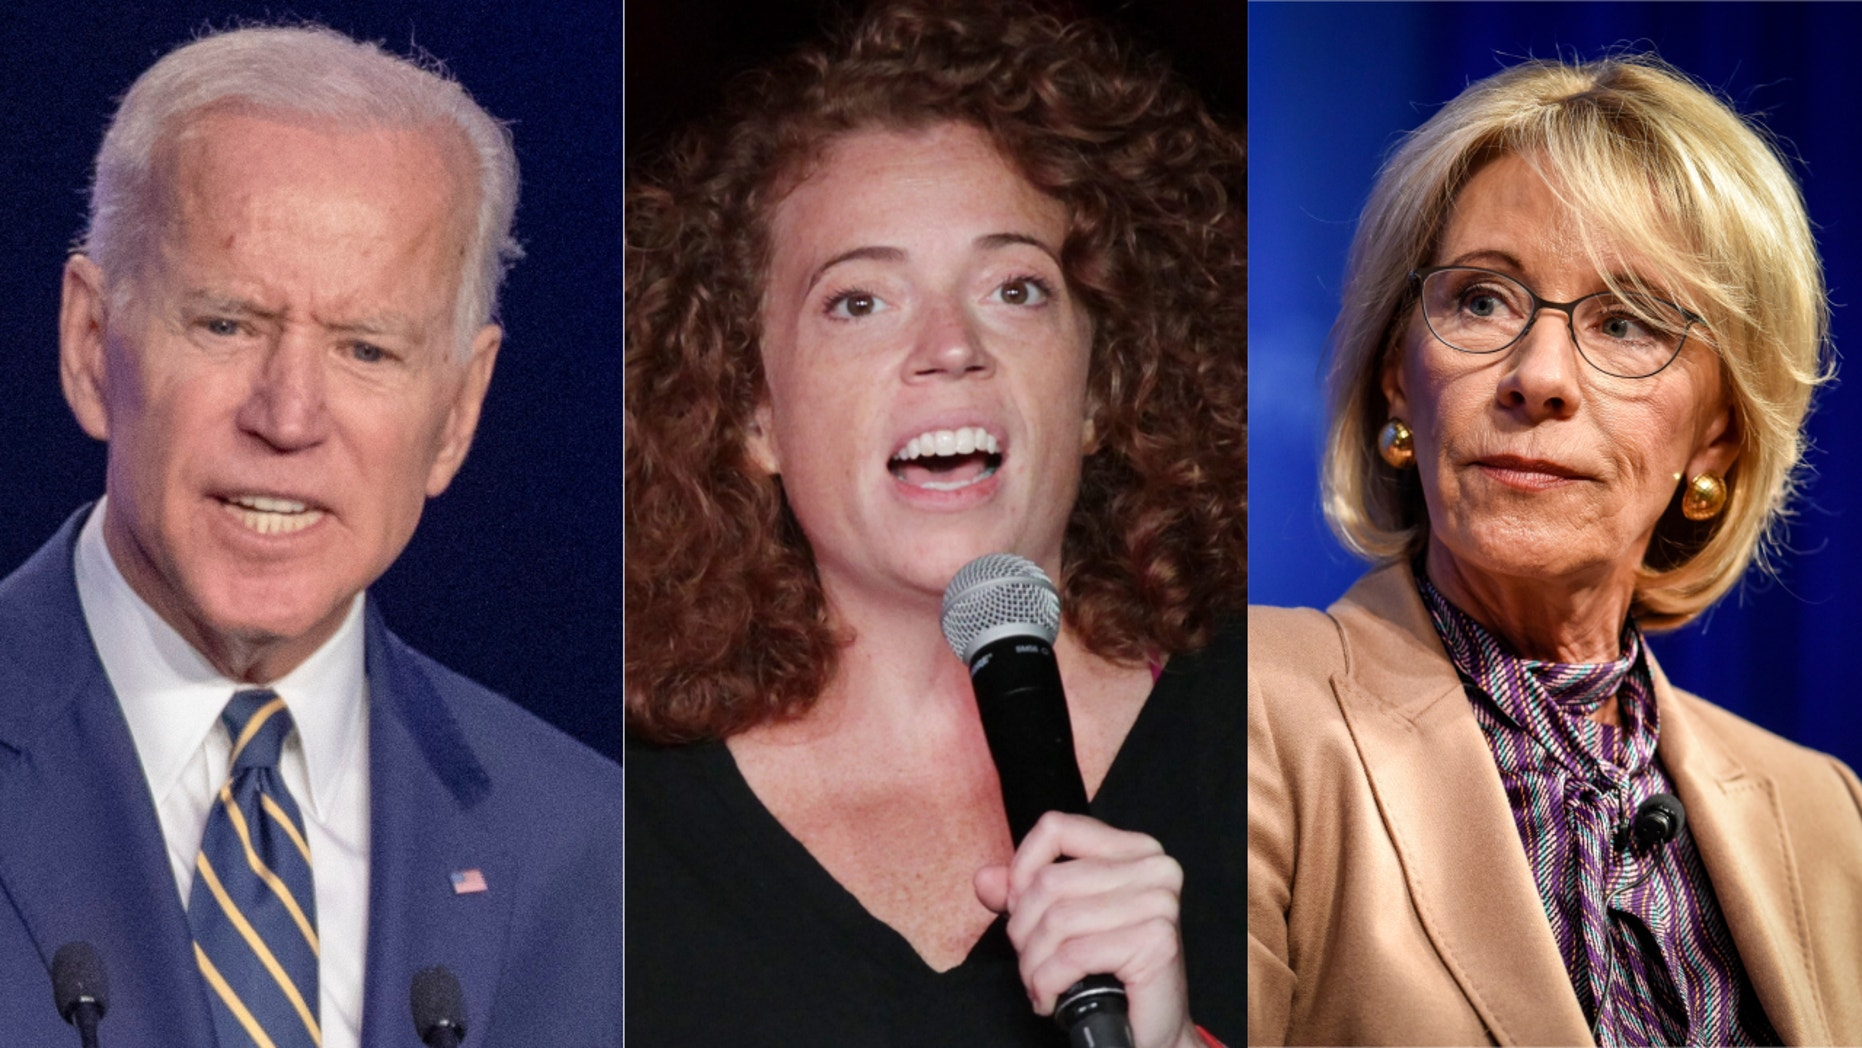 Comedian Michelle Wolf poked fun at Joe Biden and Betsy DeVos.